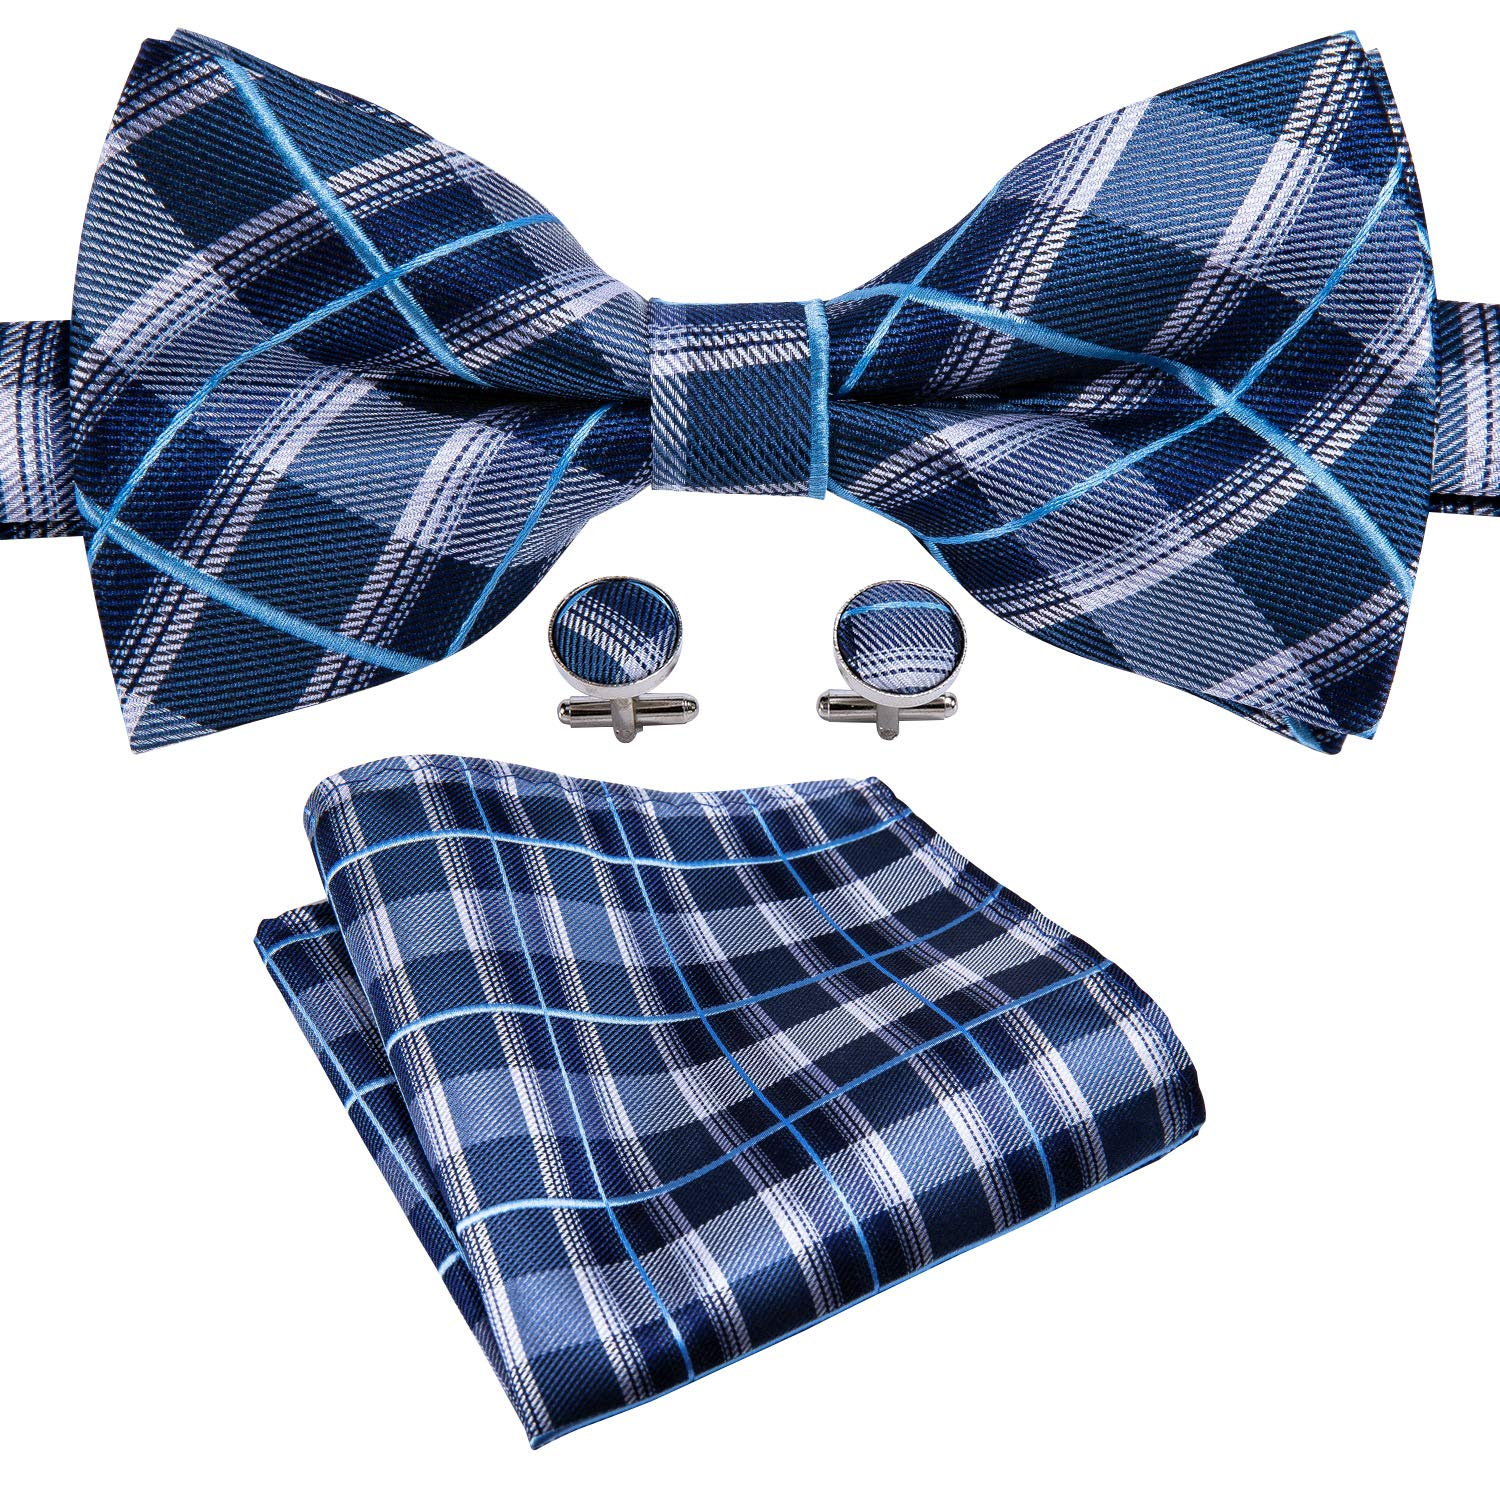 HISDERN Mens Plaid Check Bowtie Woven Self Tie Bow tie and Pocket Square Set